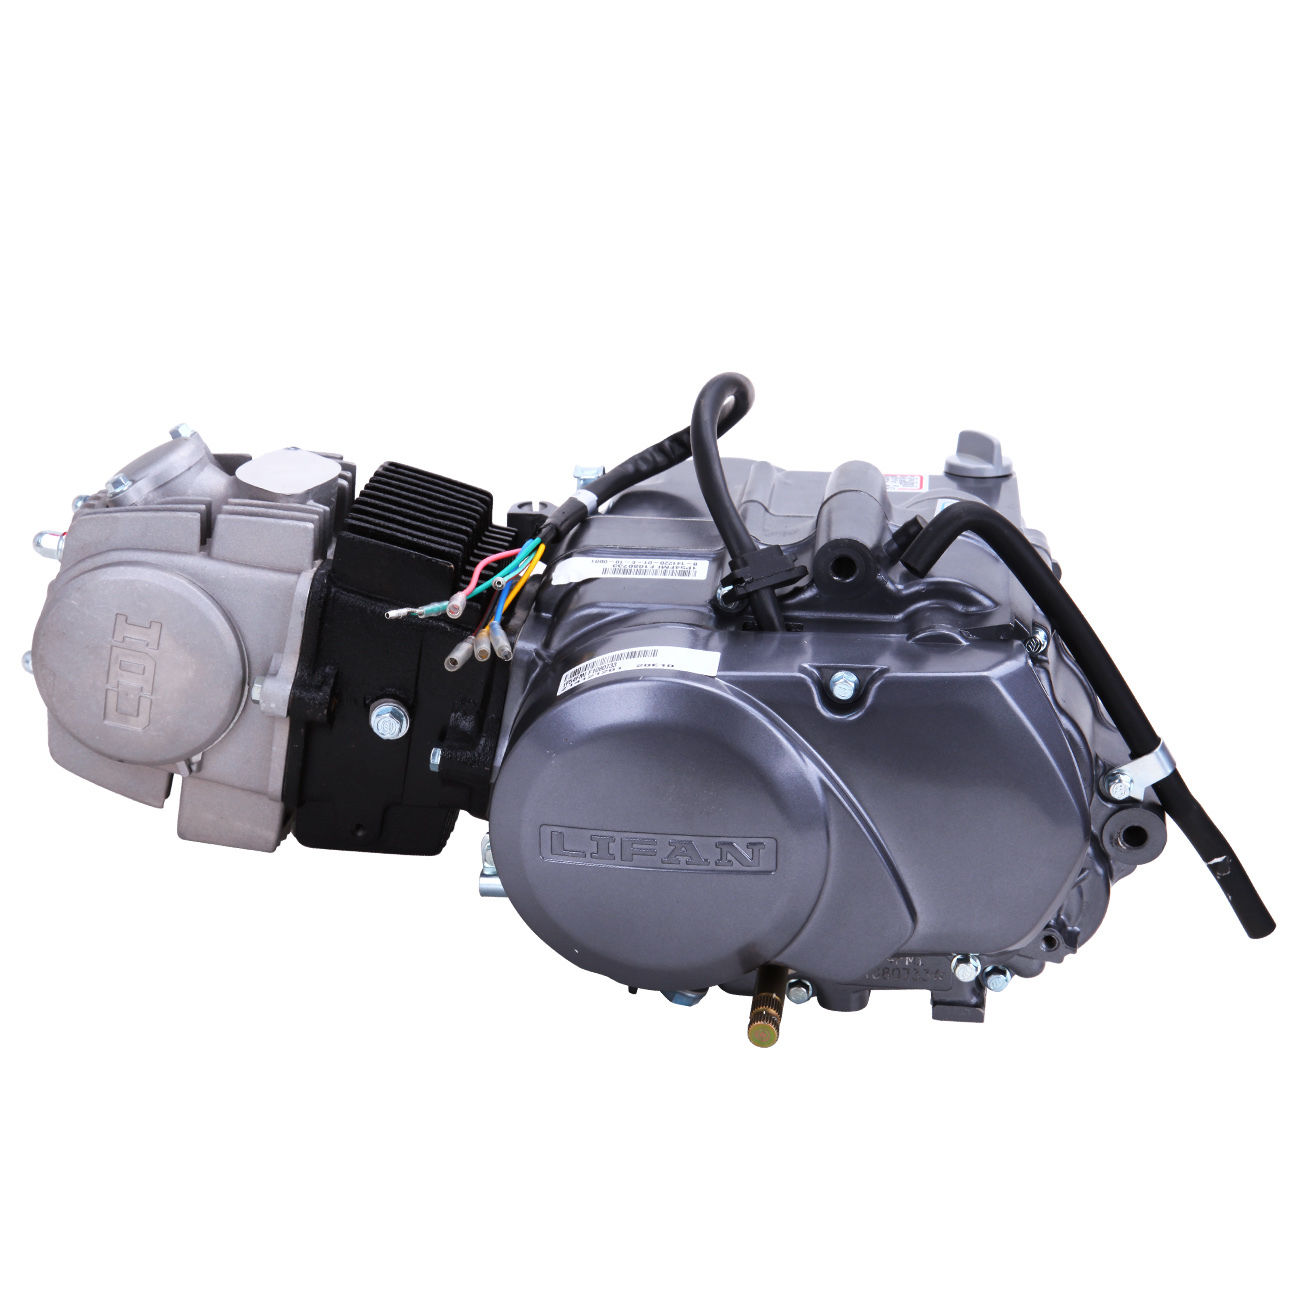 125CC CDI Dirt Bike Engine Motor Carb 124cm3 For Honda XR50 CRF50 XR CRF 50 70 125cc cdi dirt bike engine motor carb 124cm3 for honda xr50 crf50 1p52fmi-k wiring diagram at soozxer.org